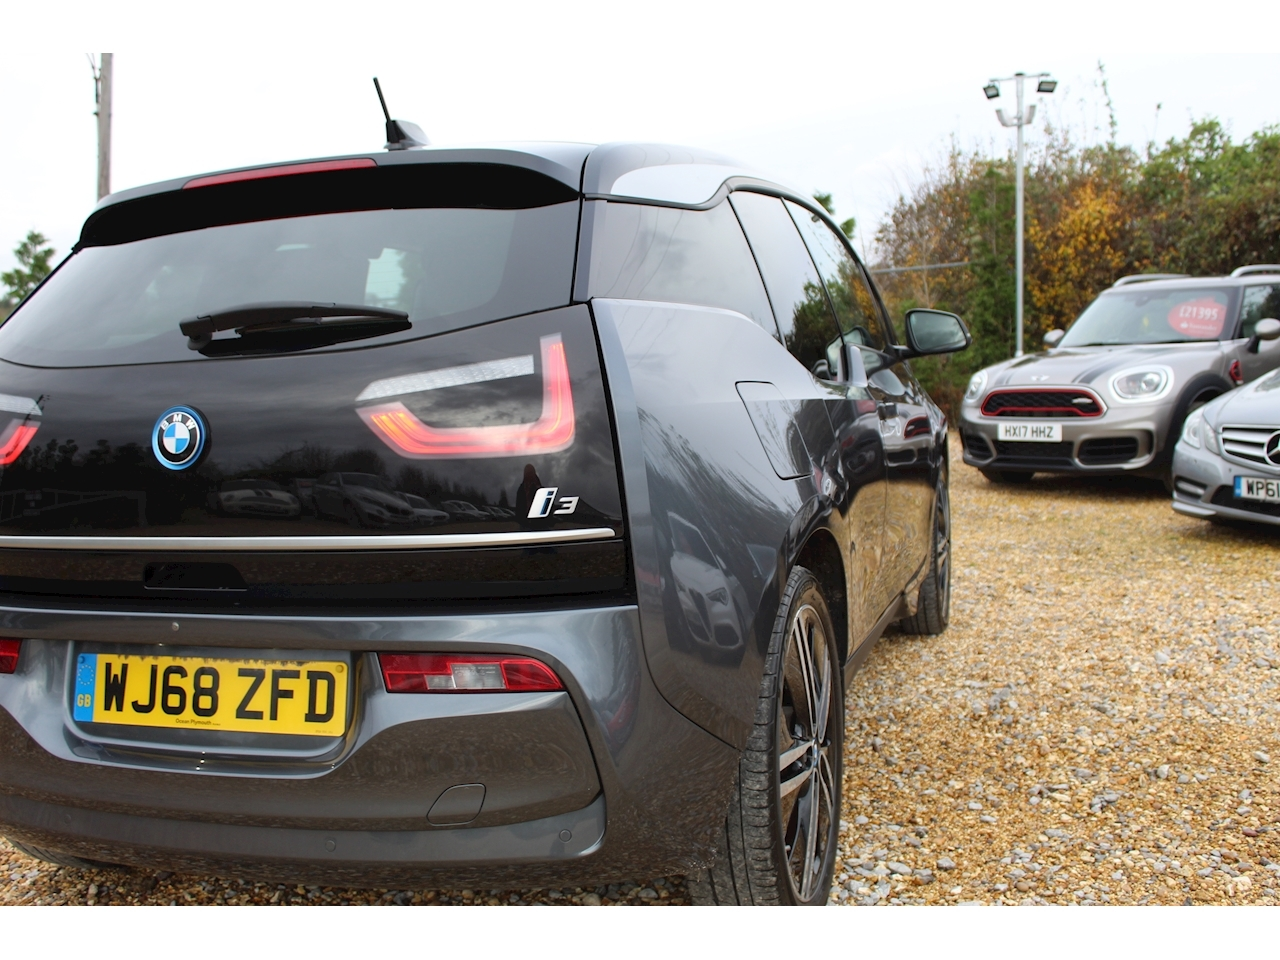 BMW i3 Series i3 94Ah with Range Extender Hatchback 0.6 Automatic Petrol Hybrid